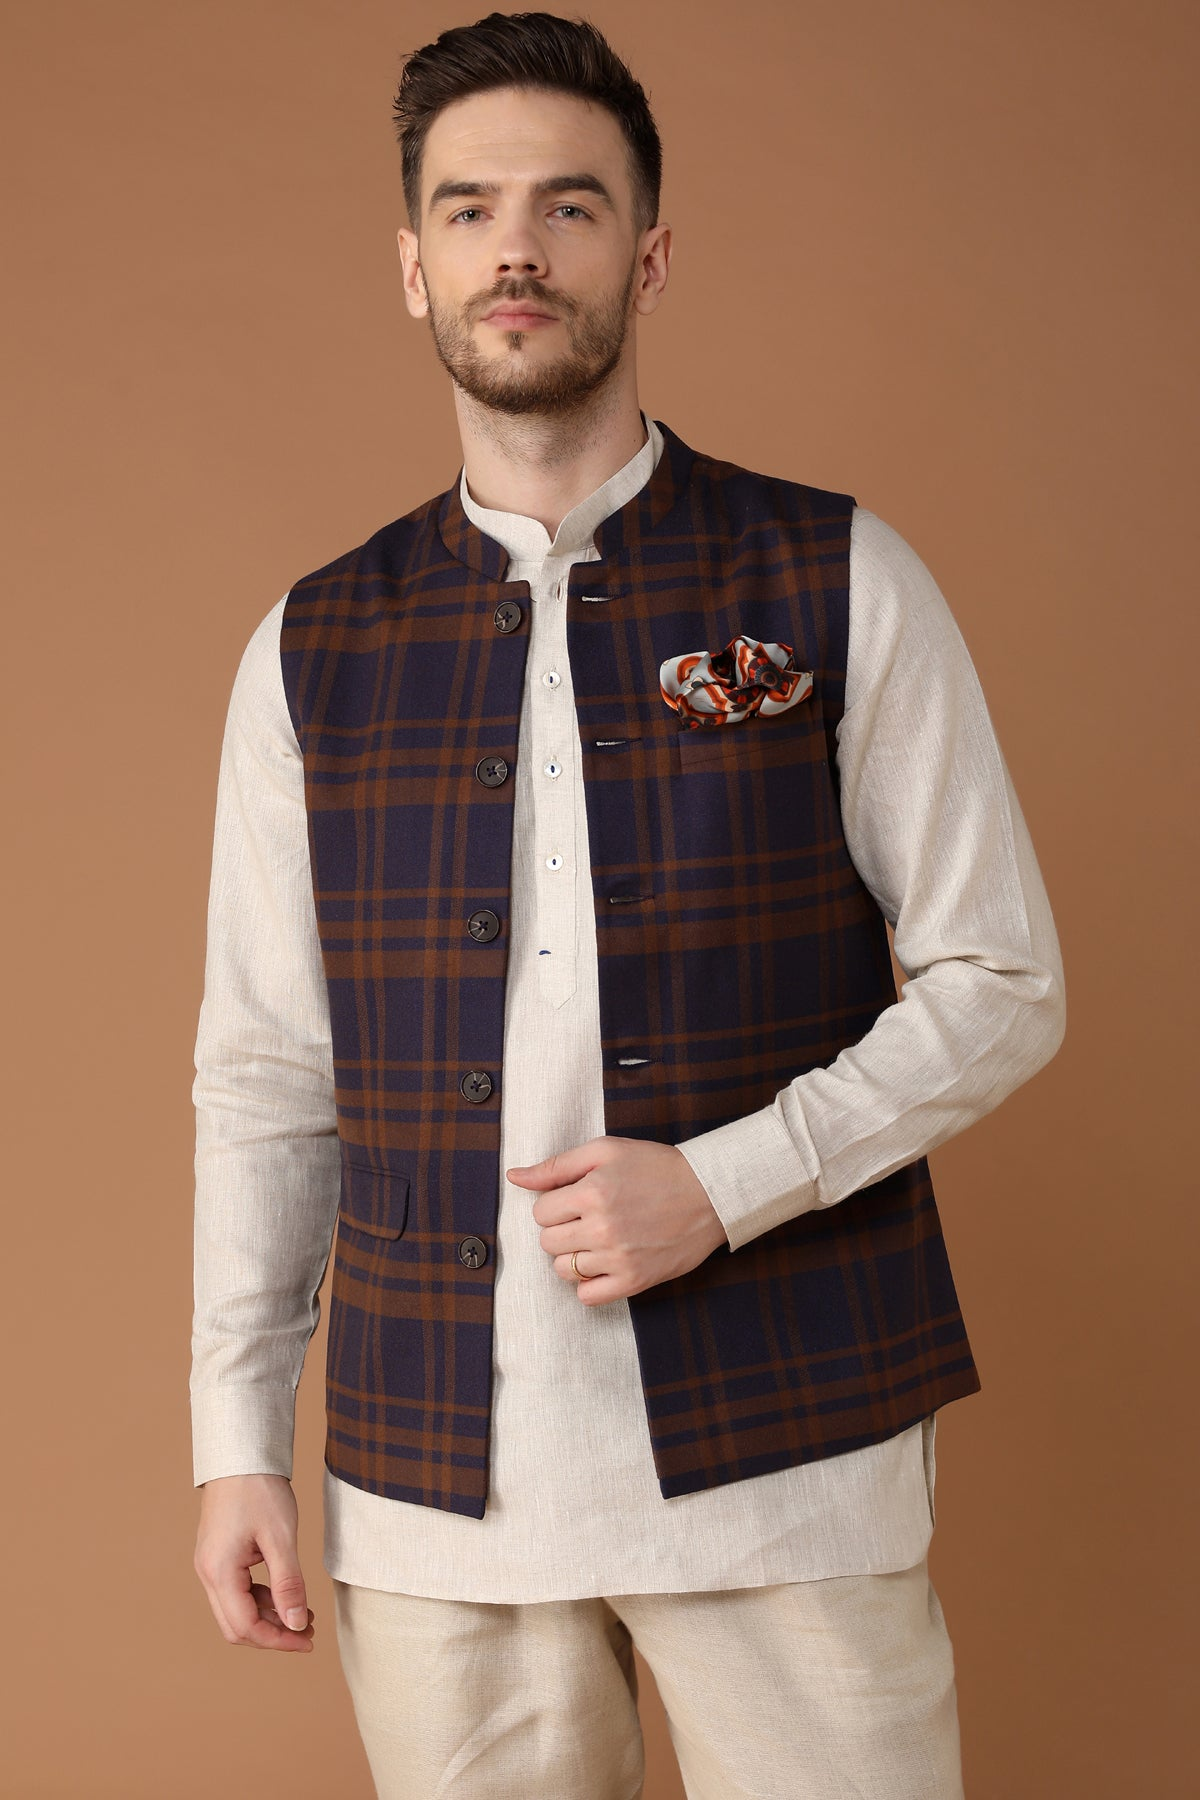 The Cadoc Nehru Jacket